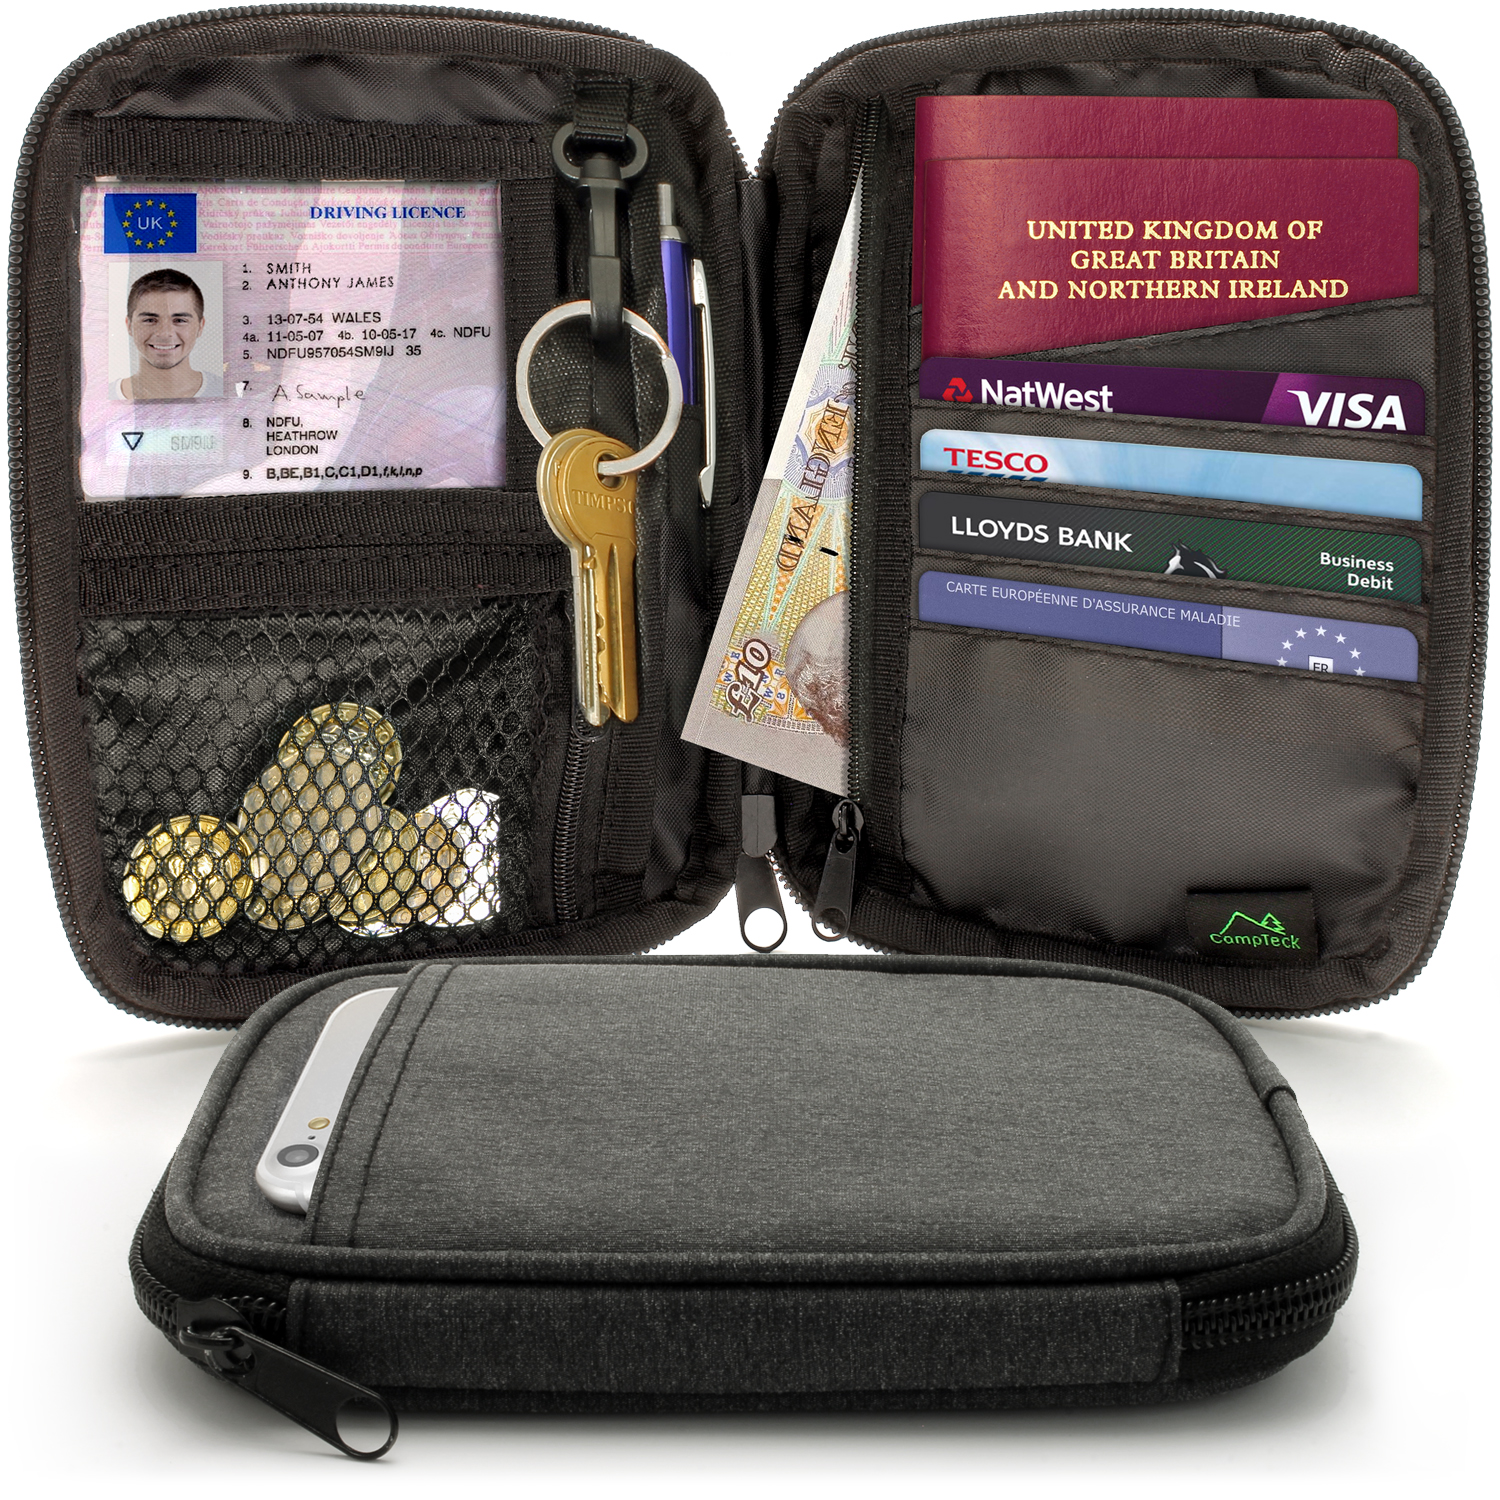 CampTeck Small Travel Wallet Passport Holder & RFID Organiser Pouch for Cards, IDs,  Money, Ticket, Key, Smartphone etc.